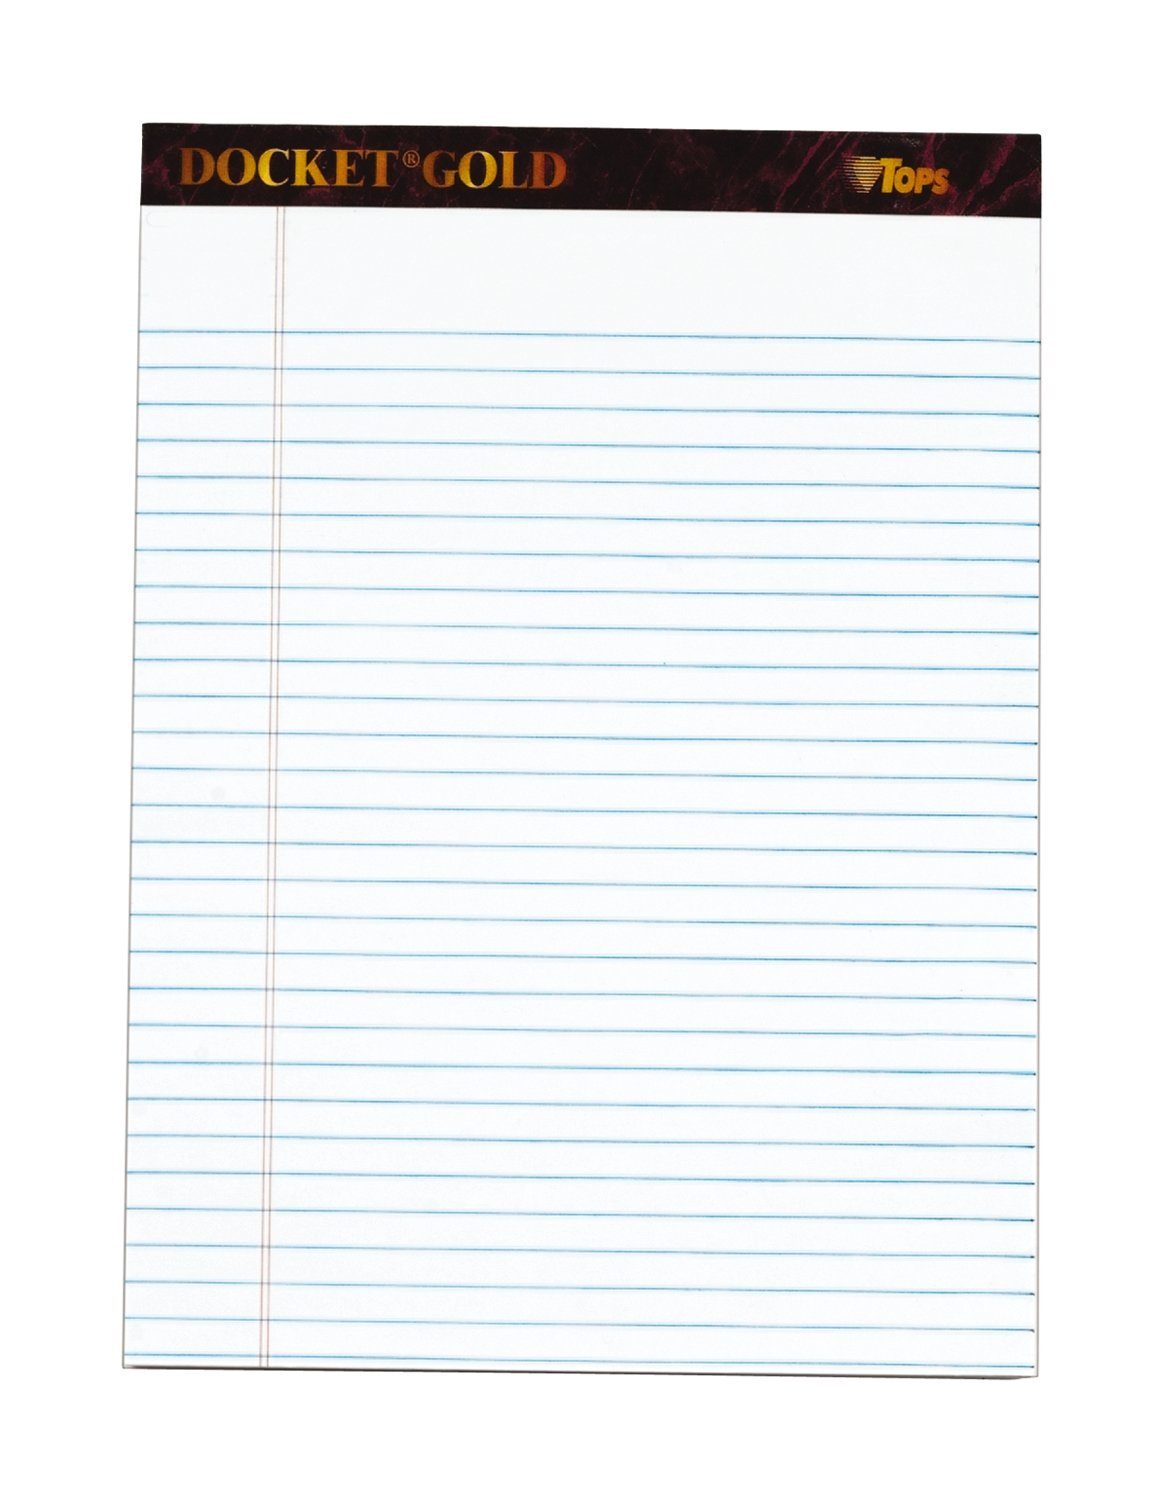 TOPS Docket Gold Writing Tablet, 8-1/2 x 11-3/4 Inches, Perforated, White, Legal/Wide Rule, 50 Sheets per Pad, 3 Pads per Pack (63963) by TOPS